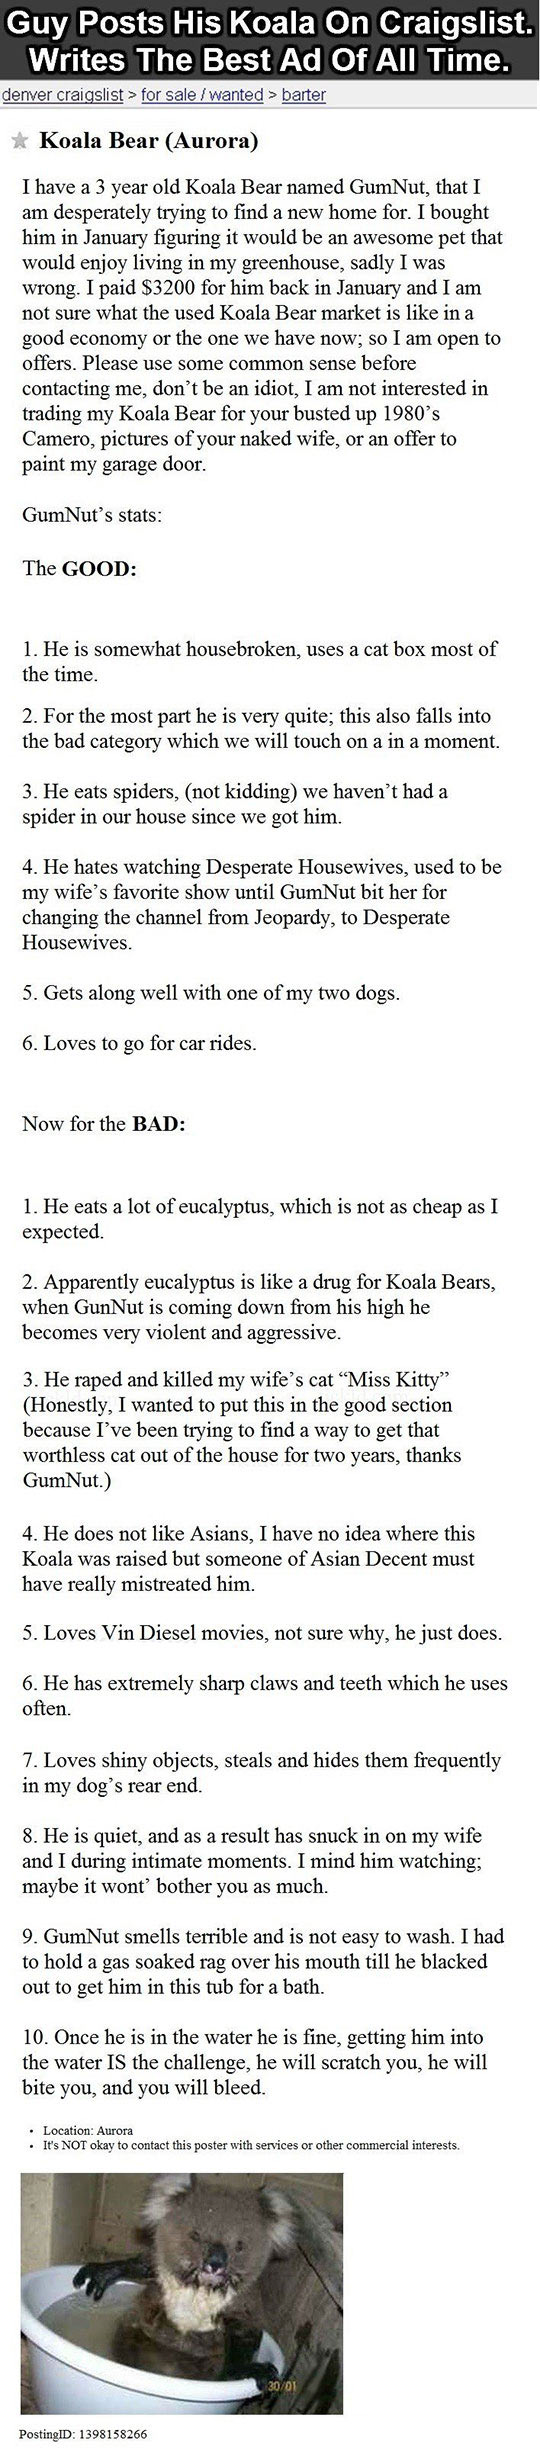 Quite Possibly The Best Craigslist Ad Of All Time